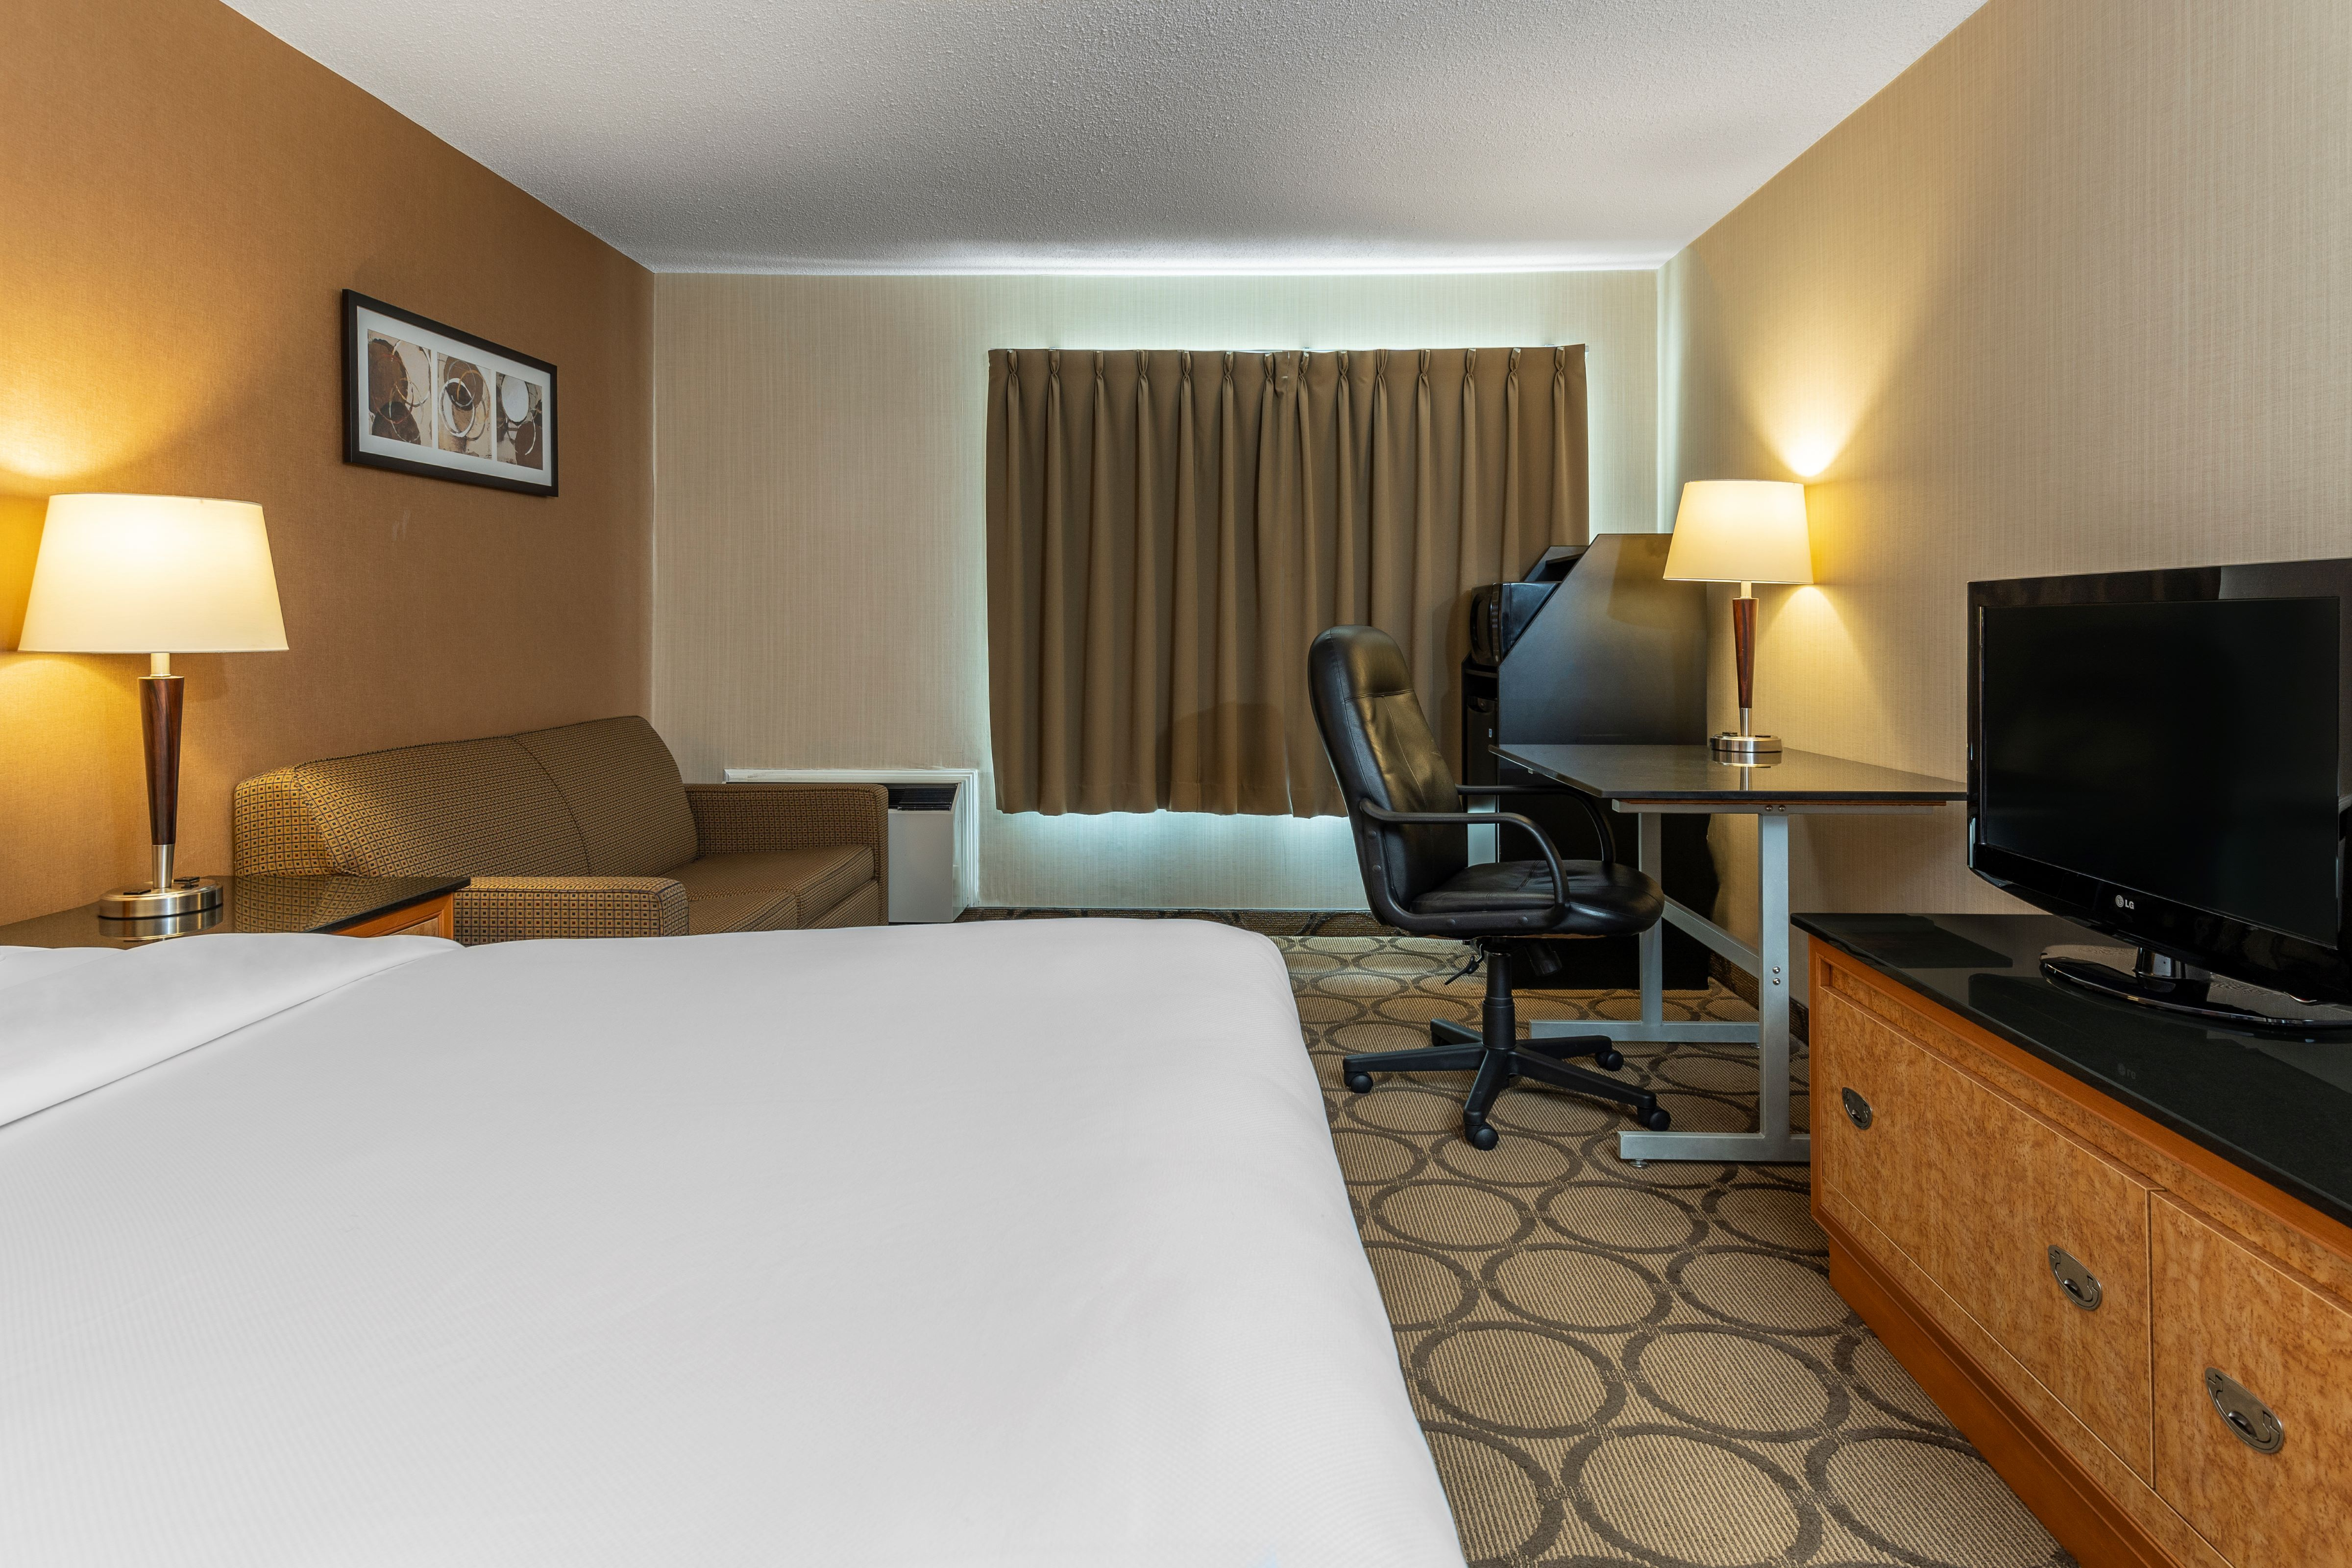 https://www.hotelsbyday.com/_data/default-hotel_image/5/26067/guestroom-with-one-queen-bed-and-sofa-bed-resized.jpg